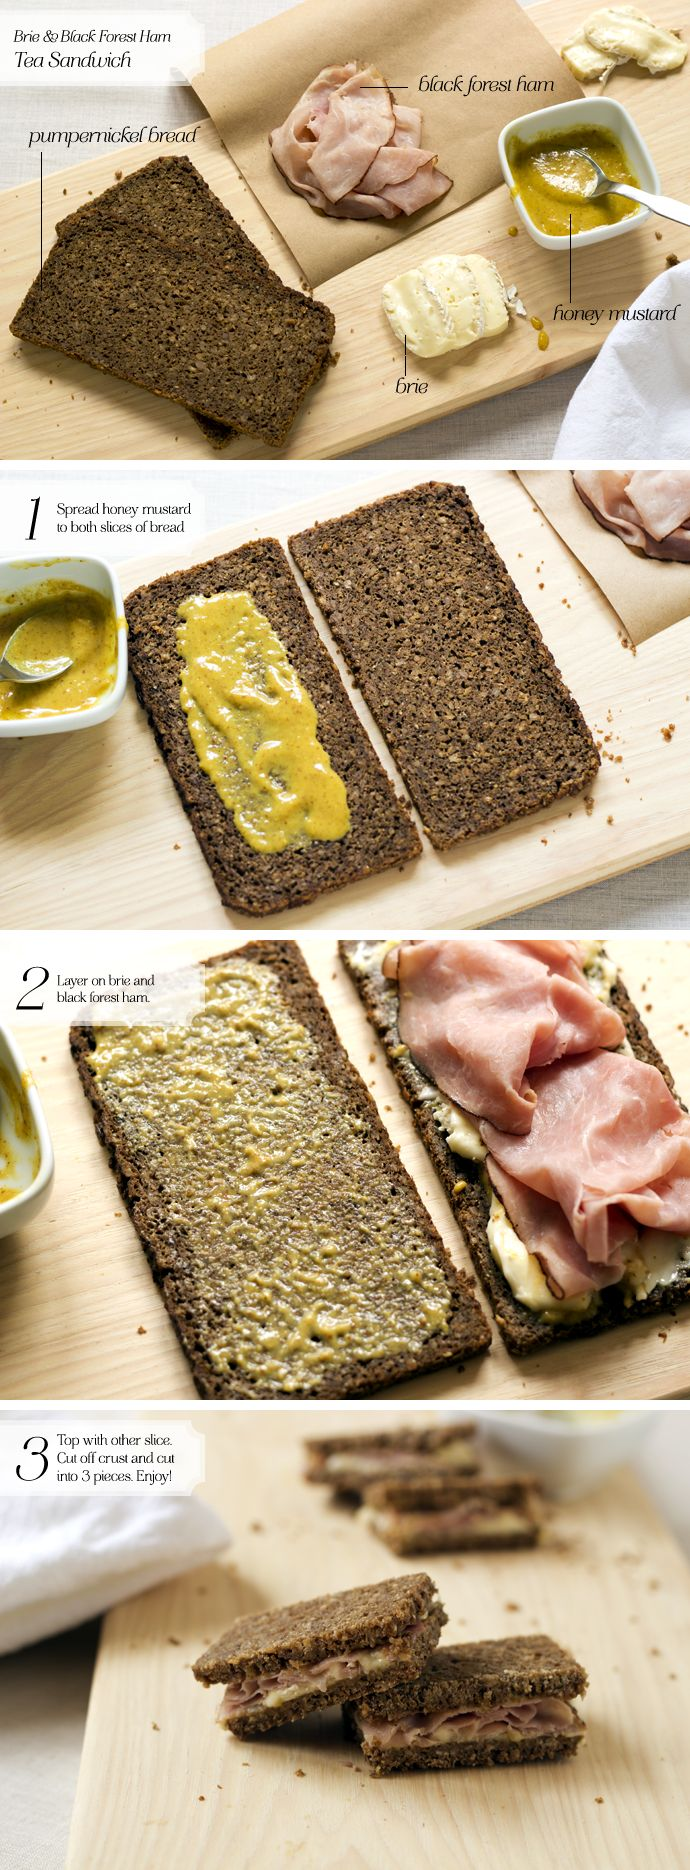 [Tea Sandwich] Brie & Black Forest Ham - Not super impressed. Something a little more complex is worth it. Good if you adore ham sandwiches.